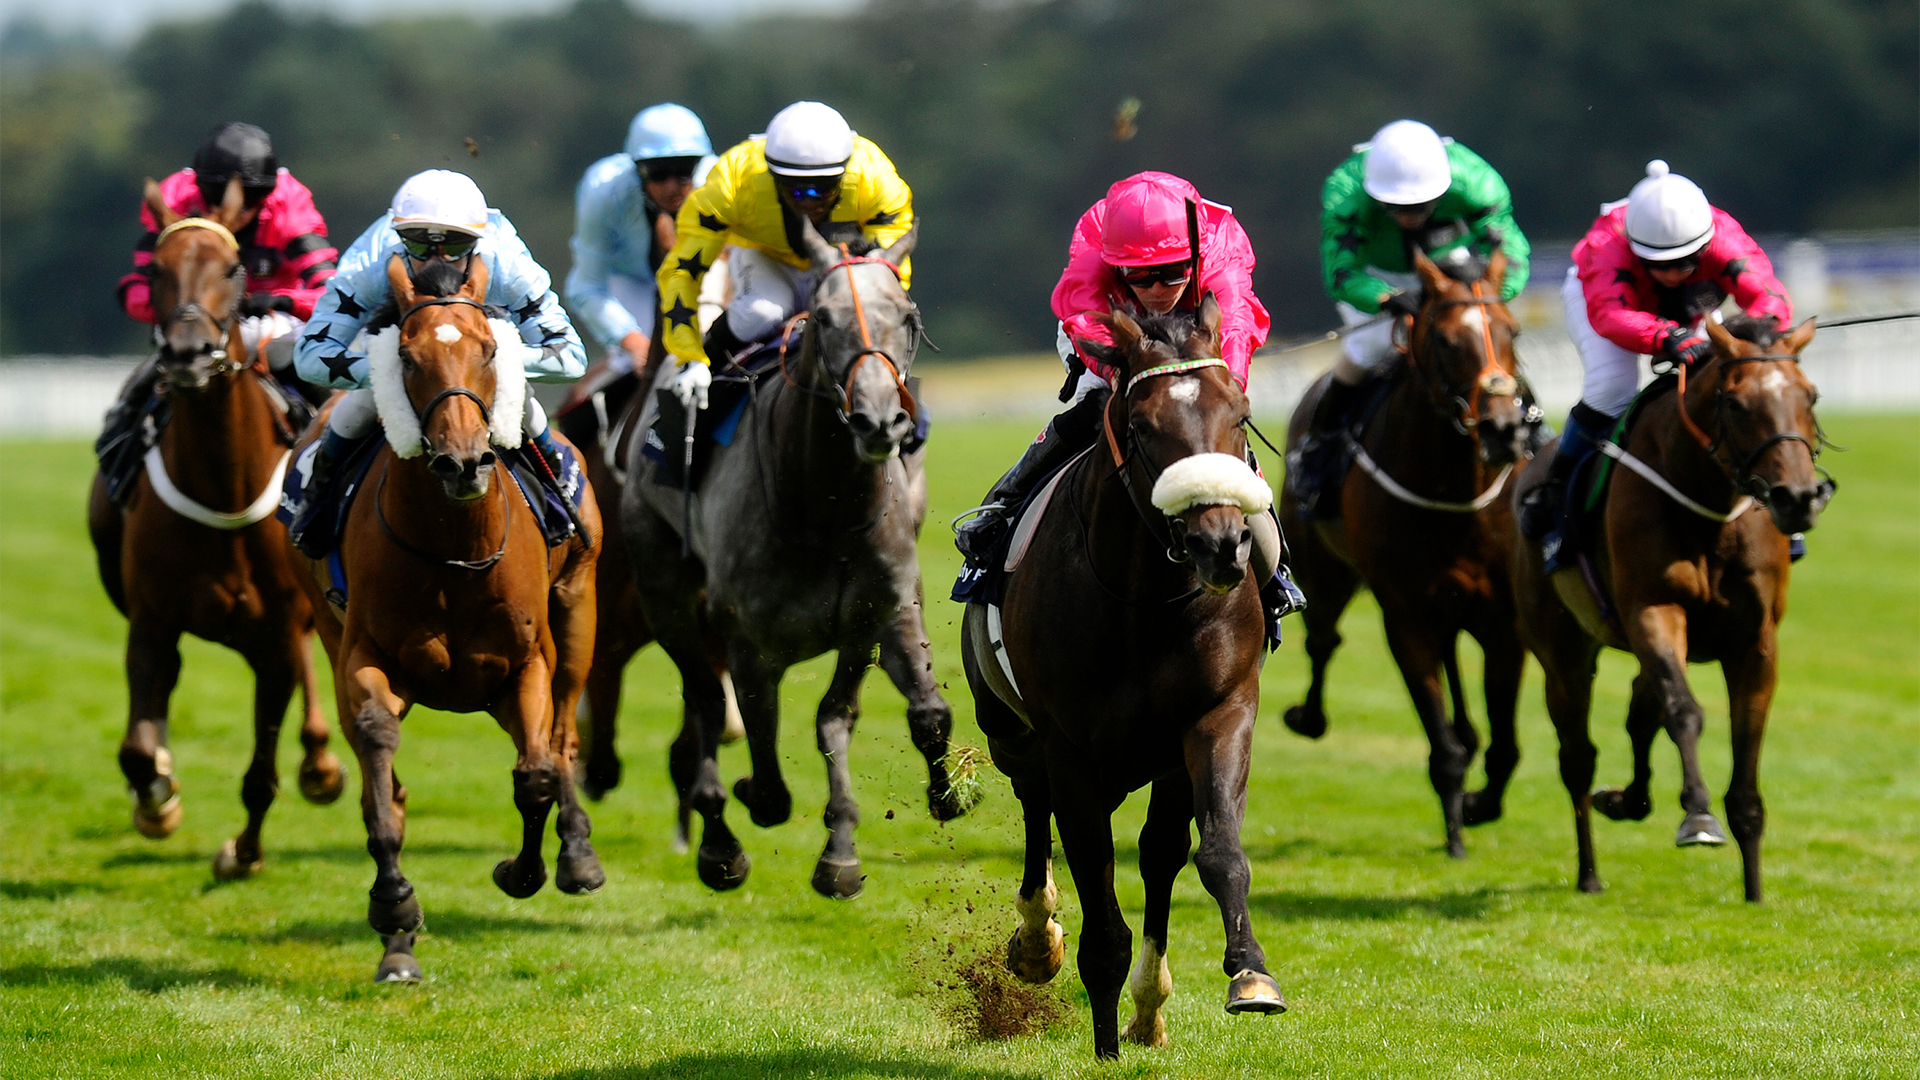 Win tickets to the Dubai Duty Free Shergar Cup on Saturday 7th August!